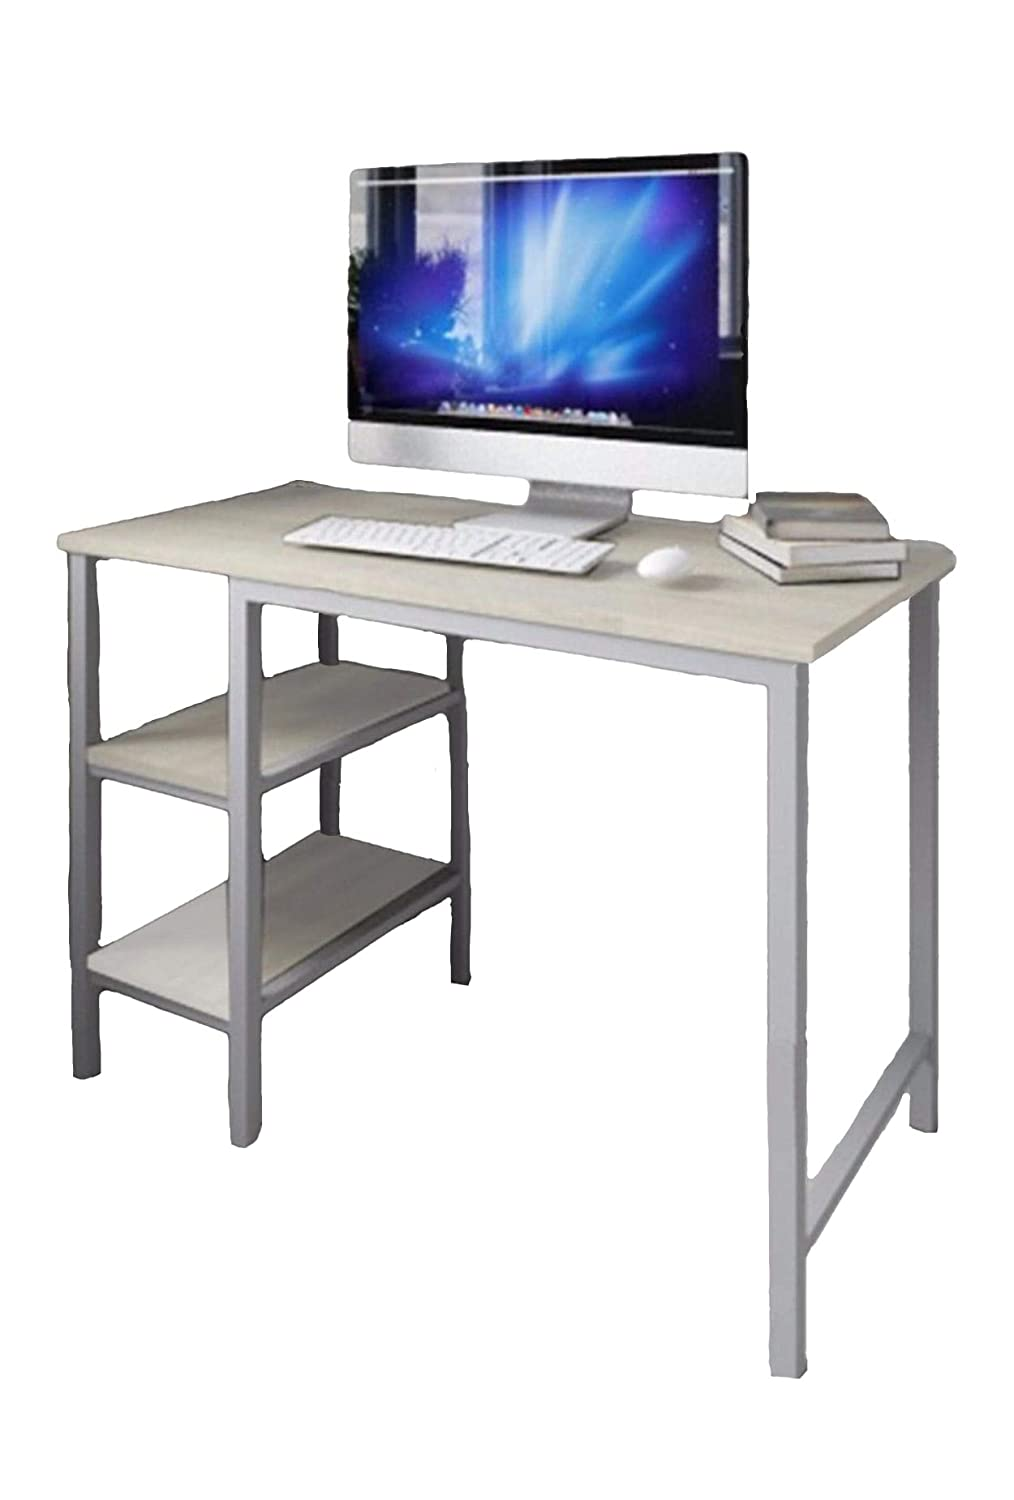 Amazing Desk Shelf Unit Computer Pc Table Study For Home Office Furniture Workstation White Download Free Architecture Designs Scobabritishbridgeorg